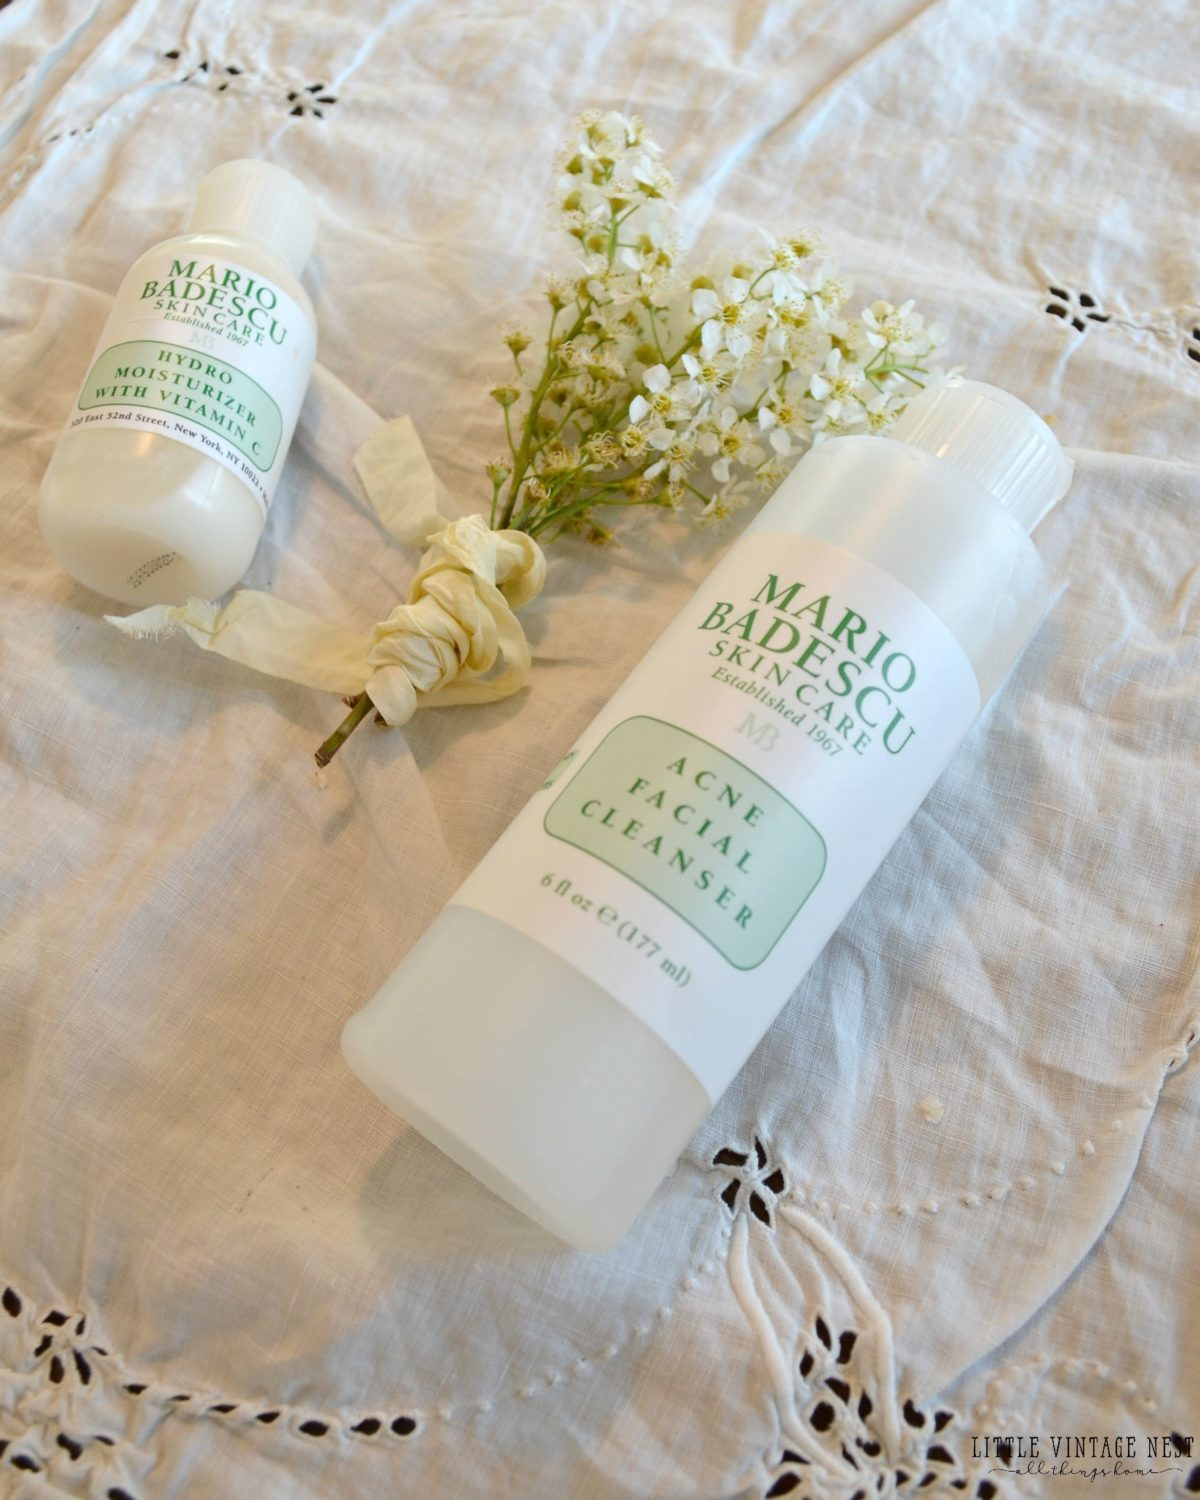 Current Loves Mario Badescu Skin Care